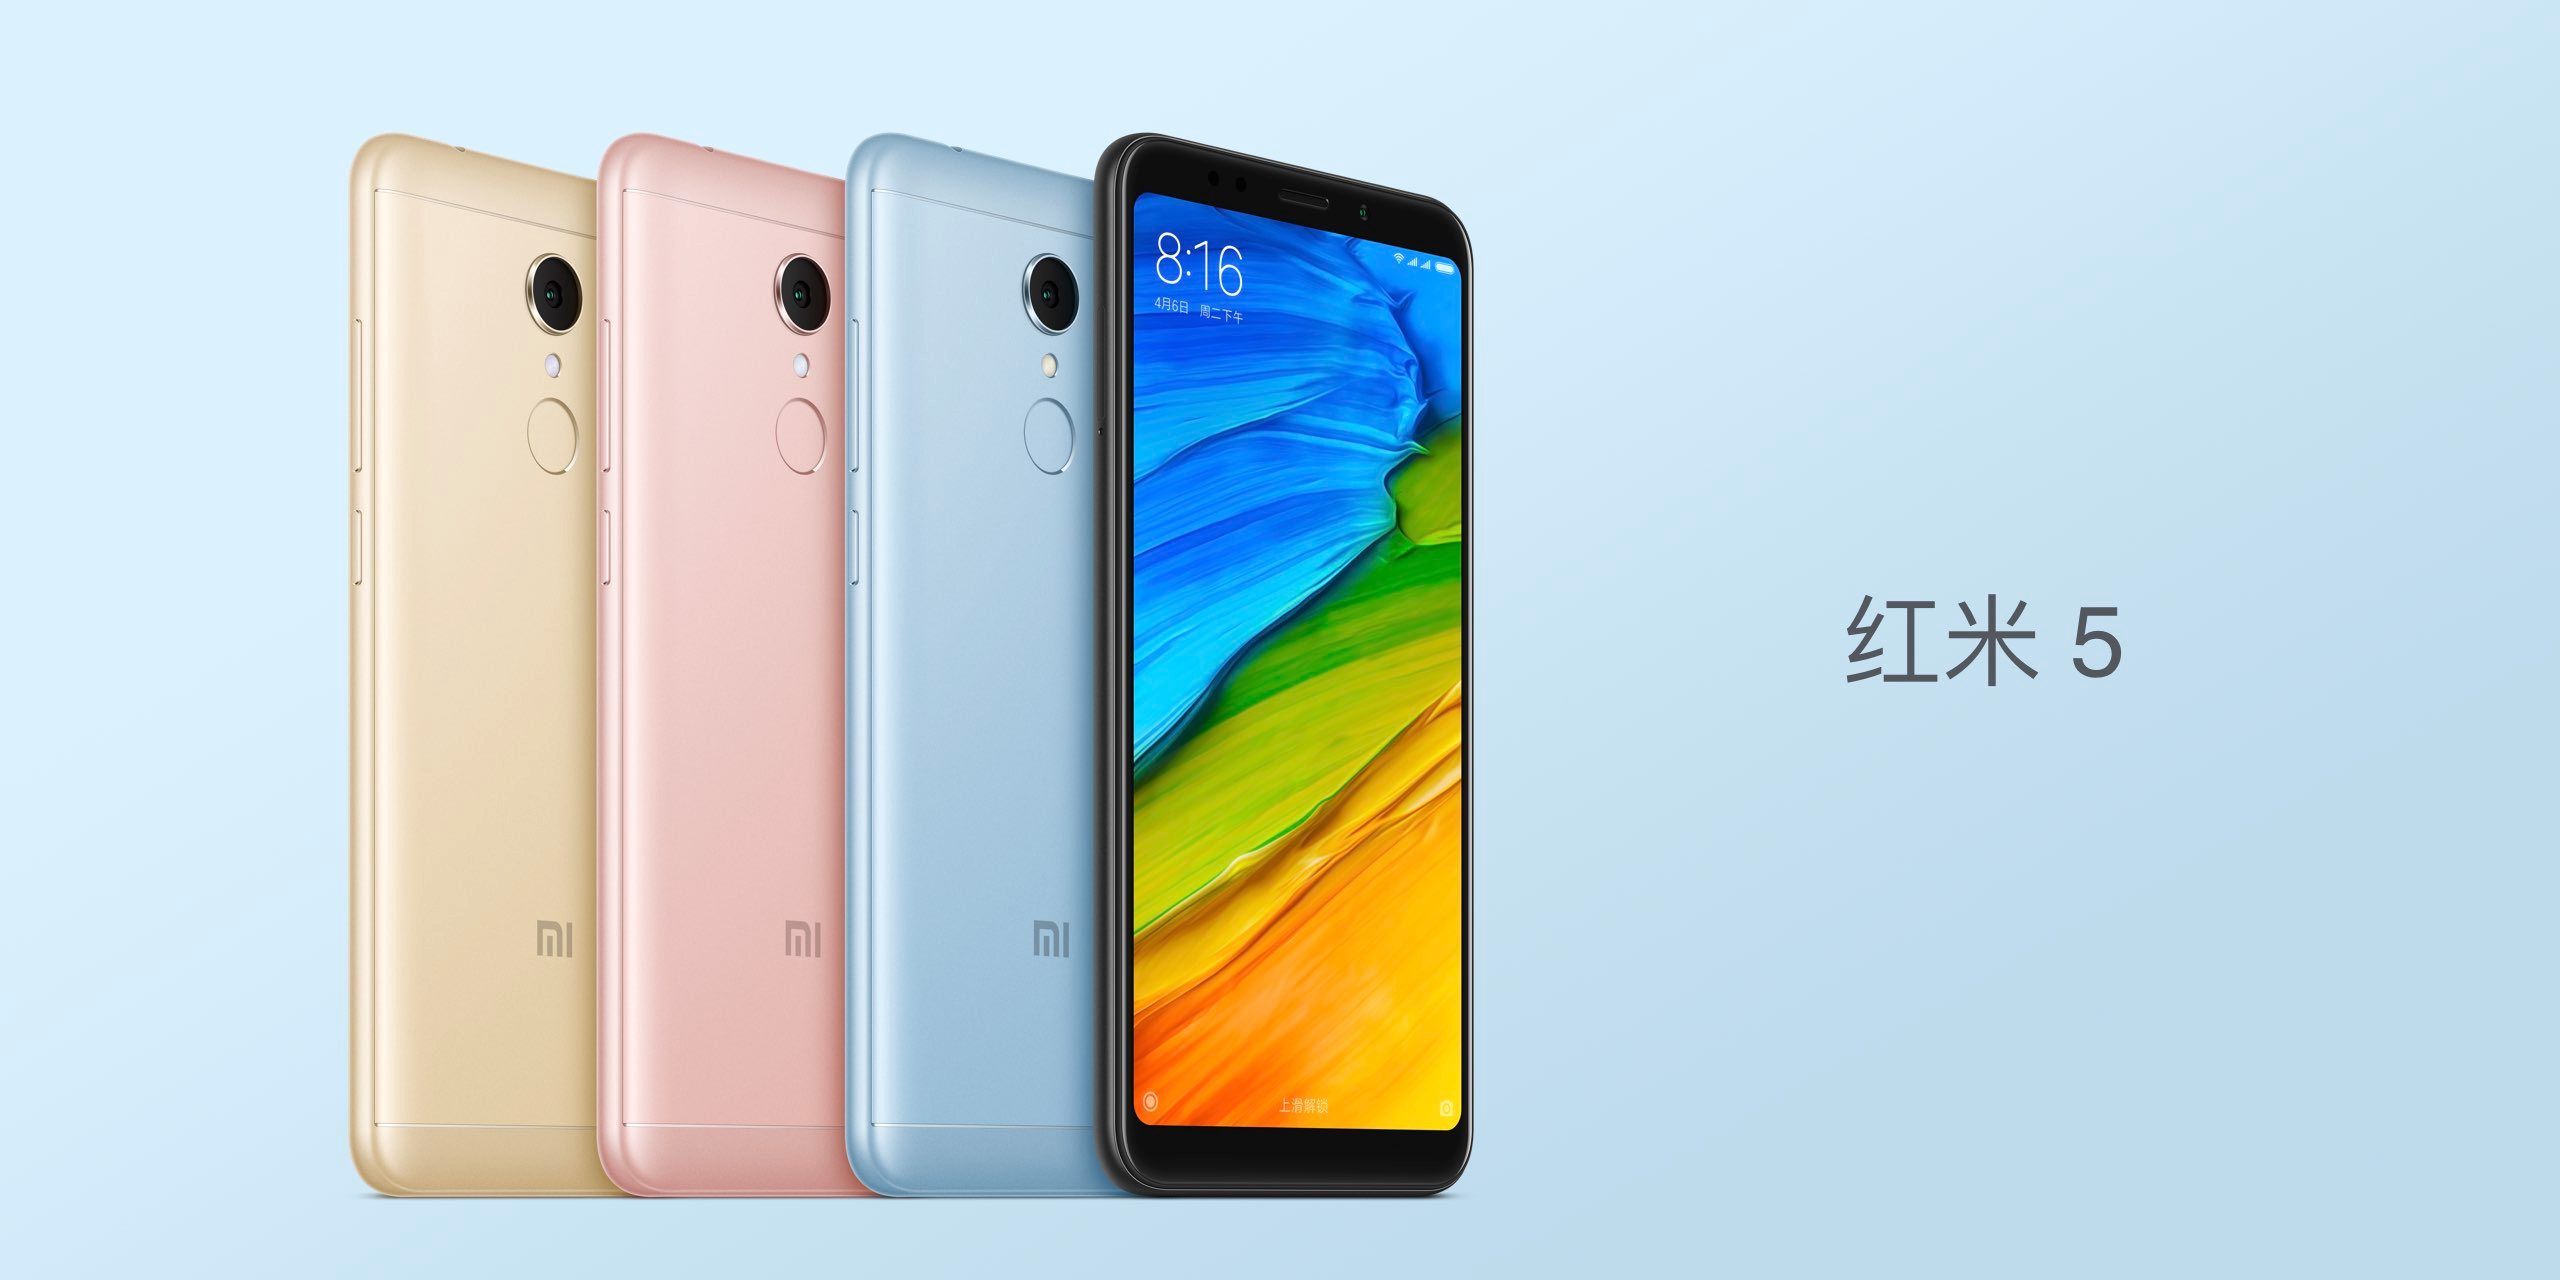 Few tech panies offer better bang for the buck than Xiaomi That trend continues with the Redmi 5 and Redmi 5 Plus which were just announced